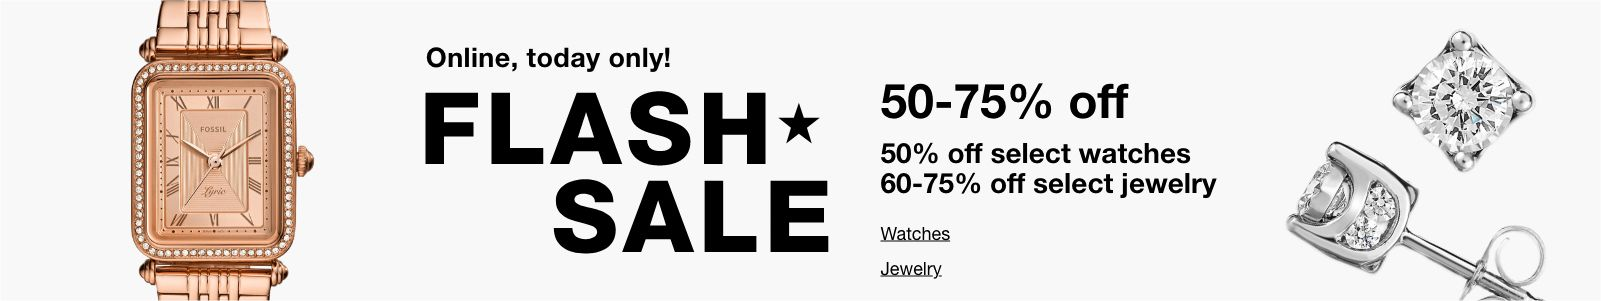 Online, today only! Flash Sale, 50-75% off, 50% off select watches, 60-75% off select jewelry, Watches, Jewelry